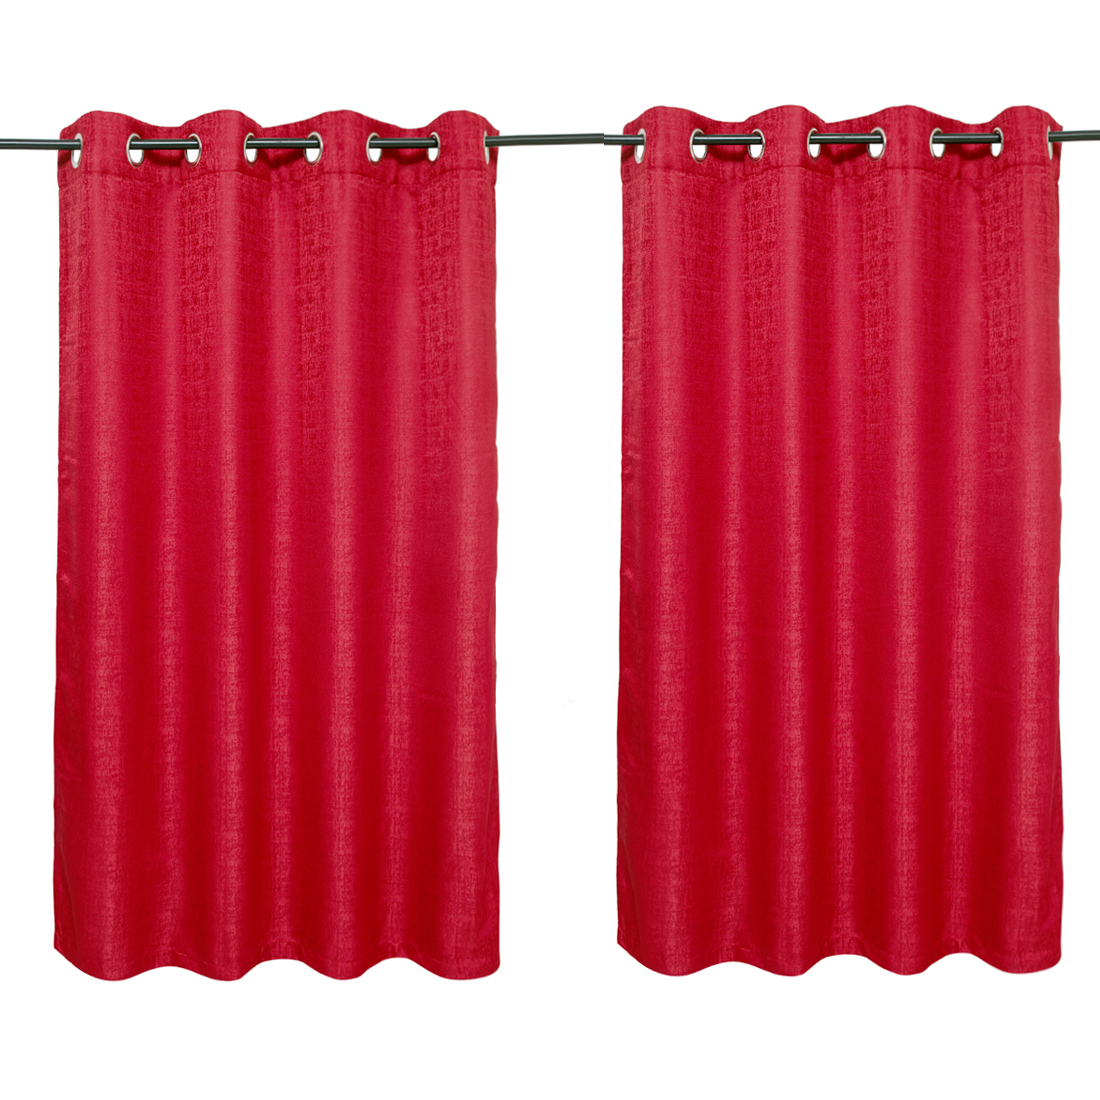 Nora Solid set of 2 Polyester Door Curtains in Maroon Colour by Living Essence